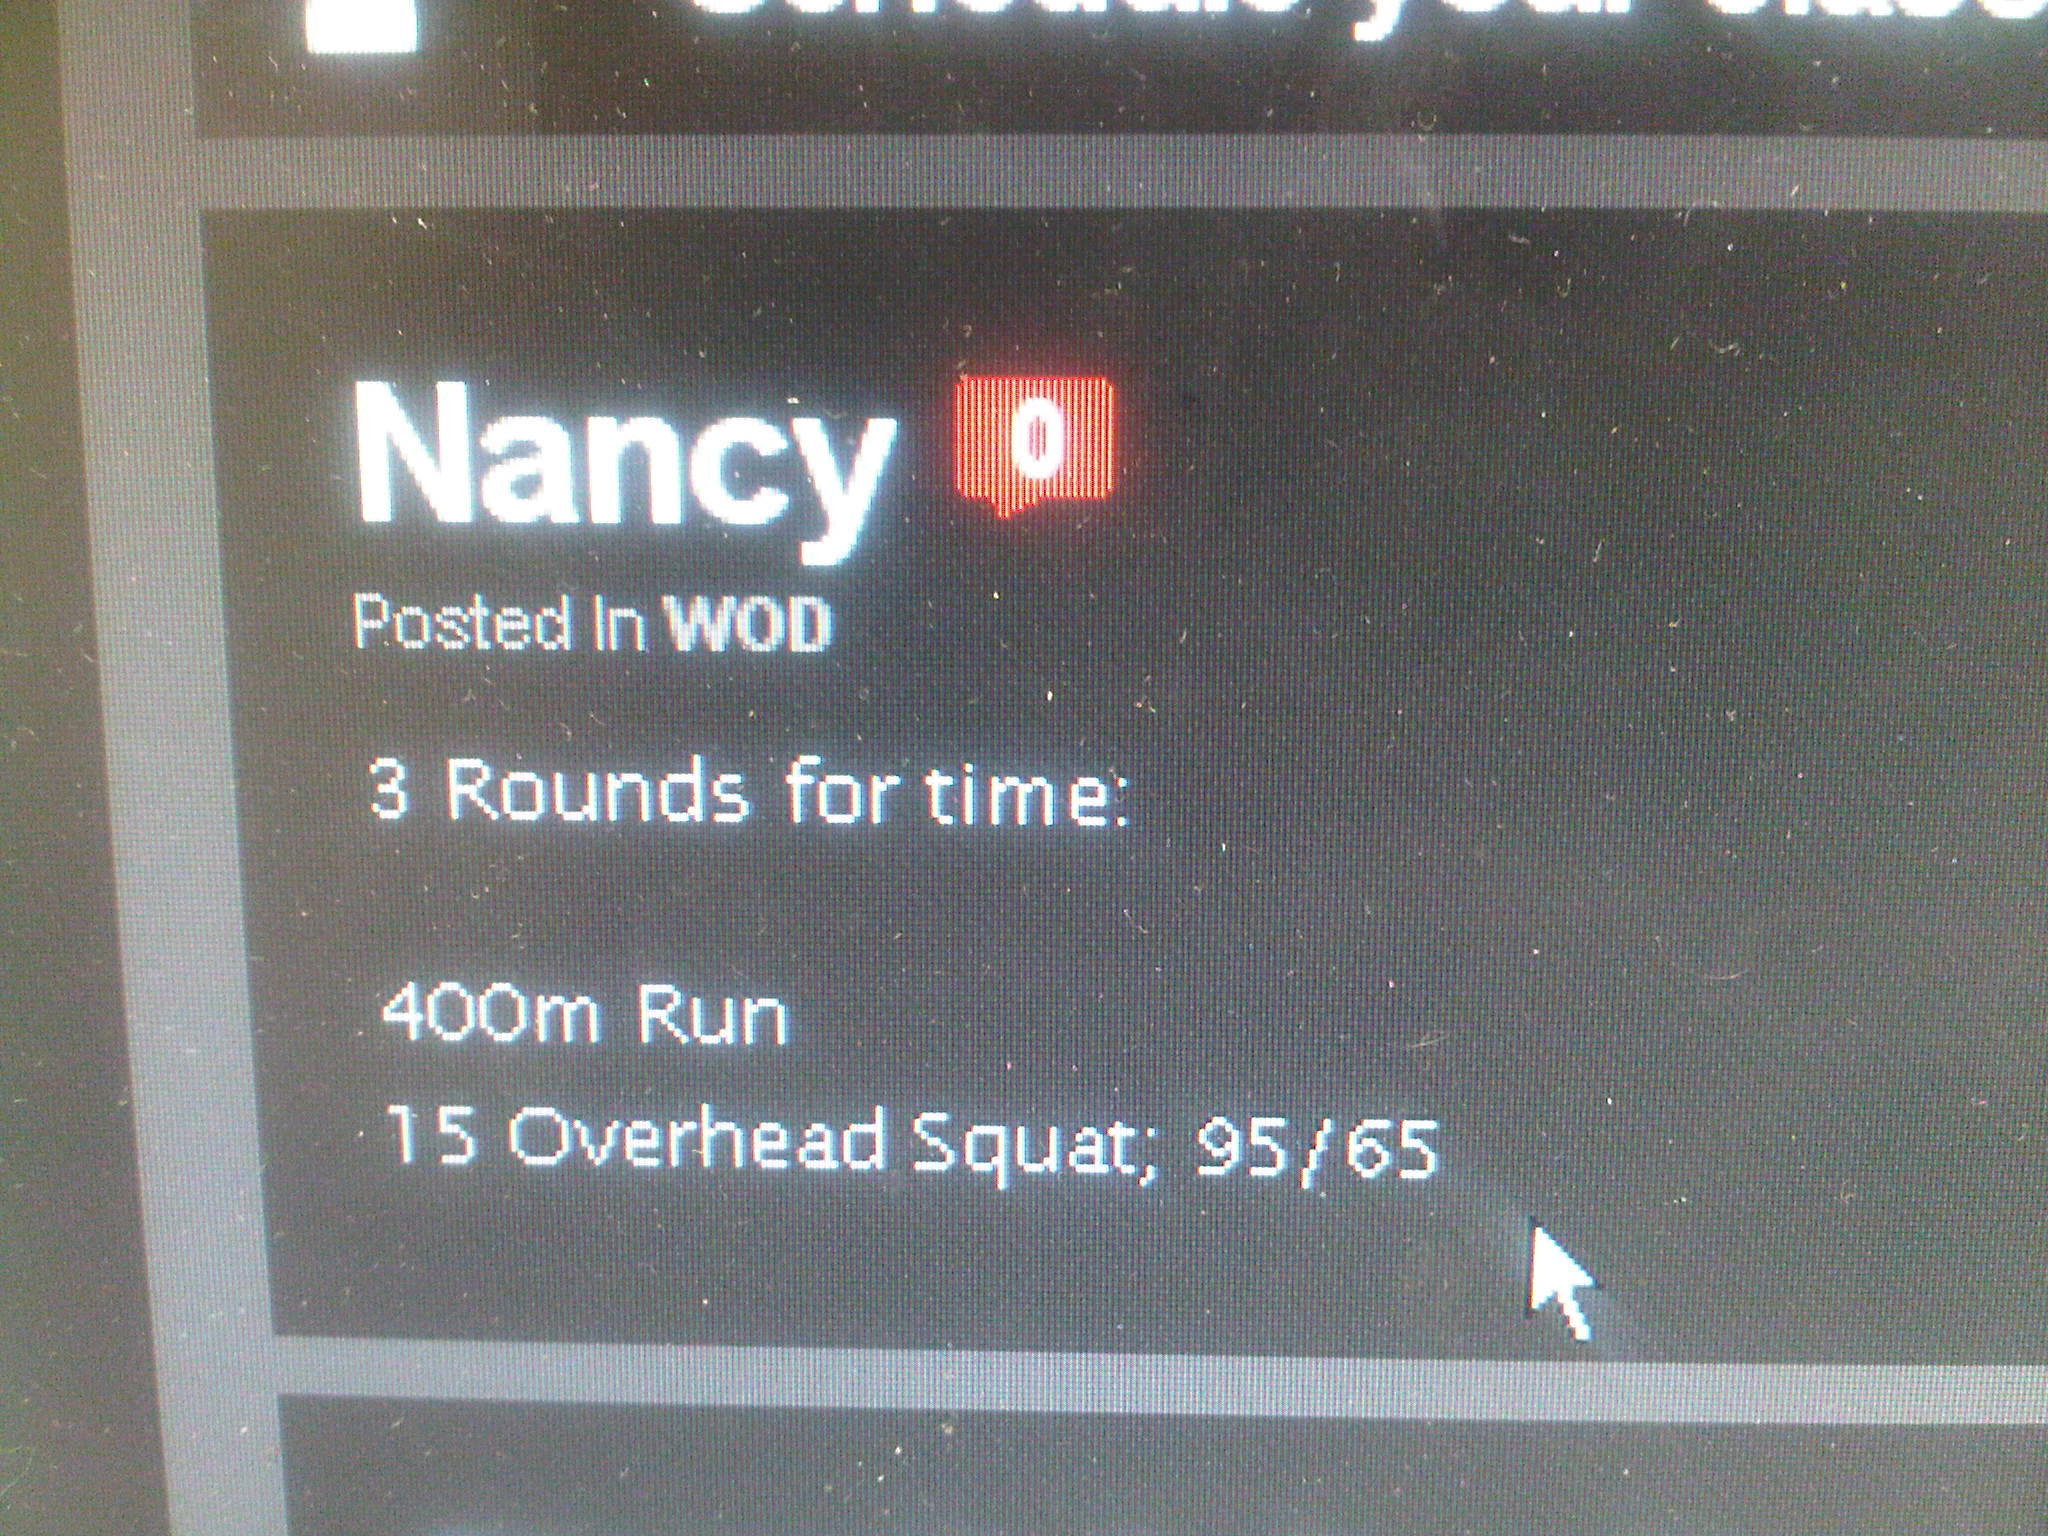 CrossFit Nancy